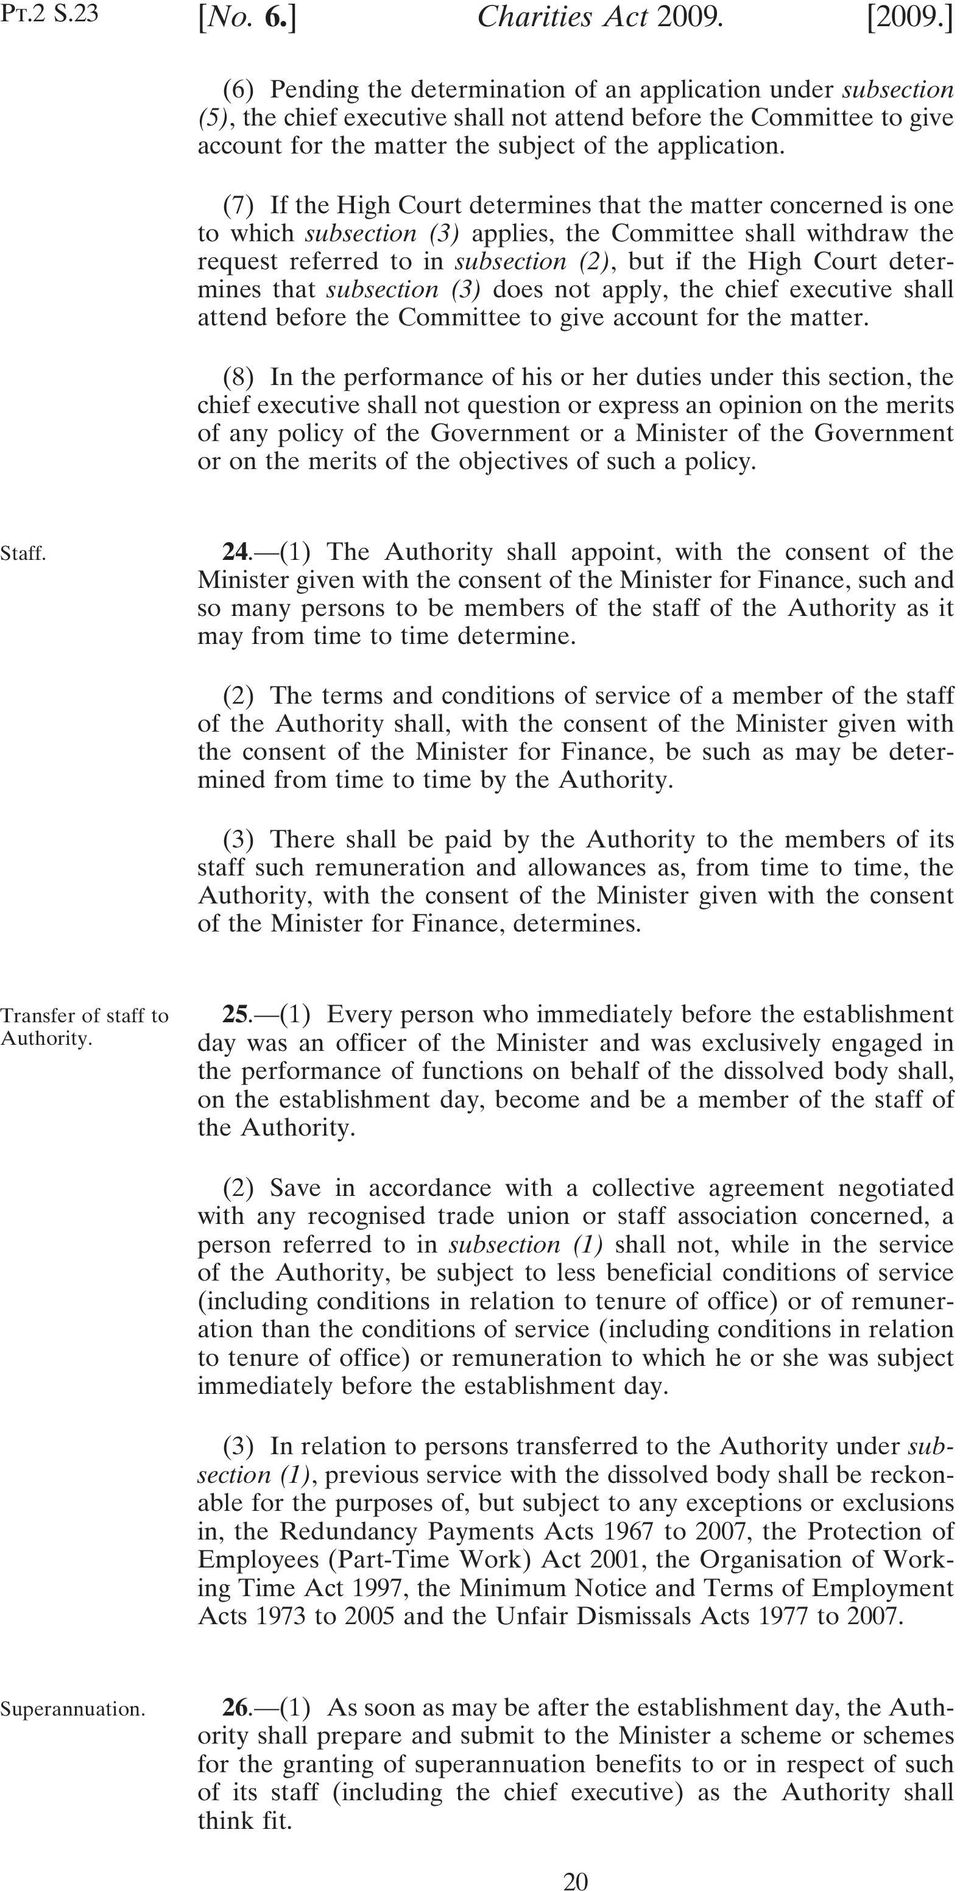 (7) If the High Court determines that the matter concerned is one to which subsection (3) applies, the Committee shall withdraw the request referred to in subsection (2), but if the High Court